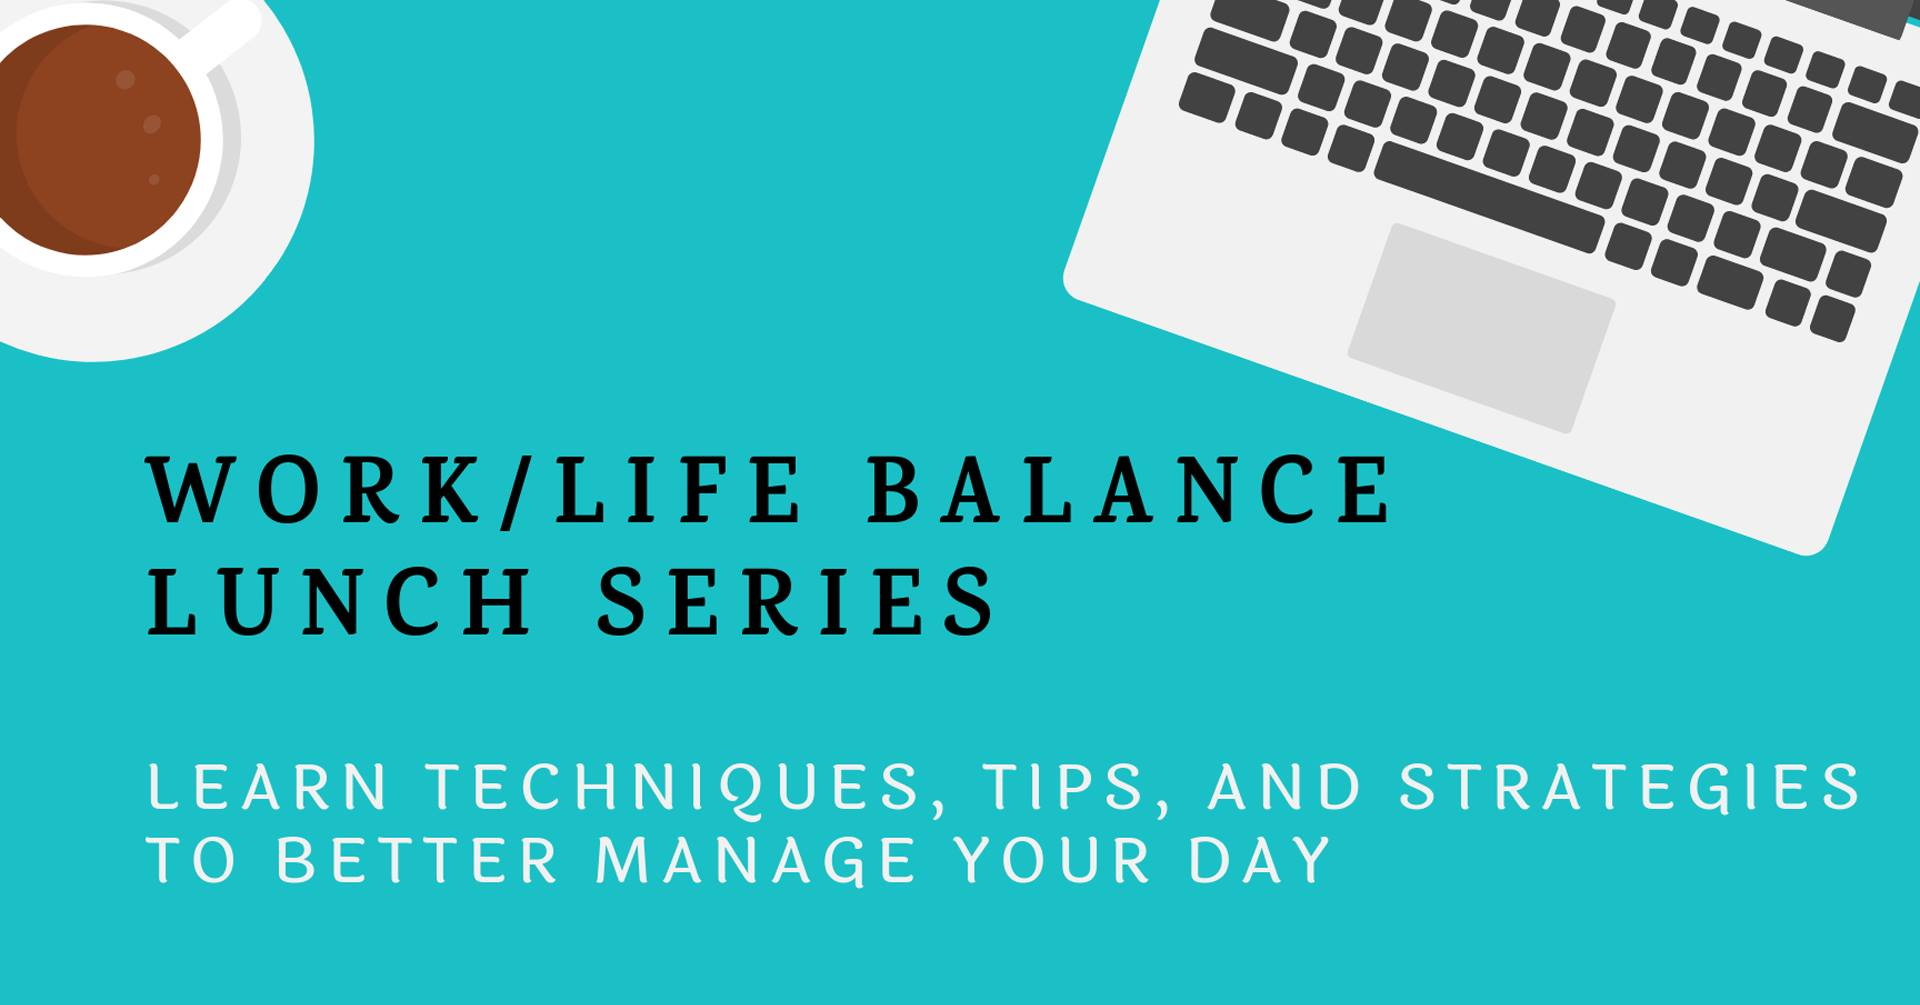 Work Life Balance Lunch Series.jpg